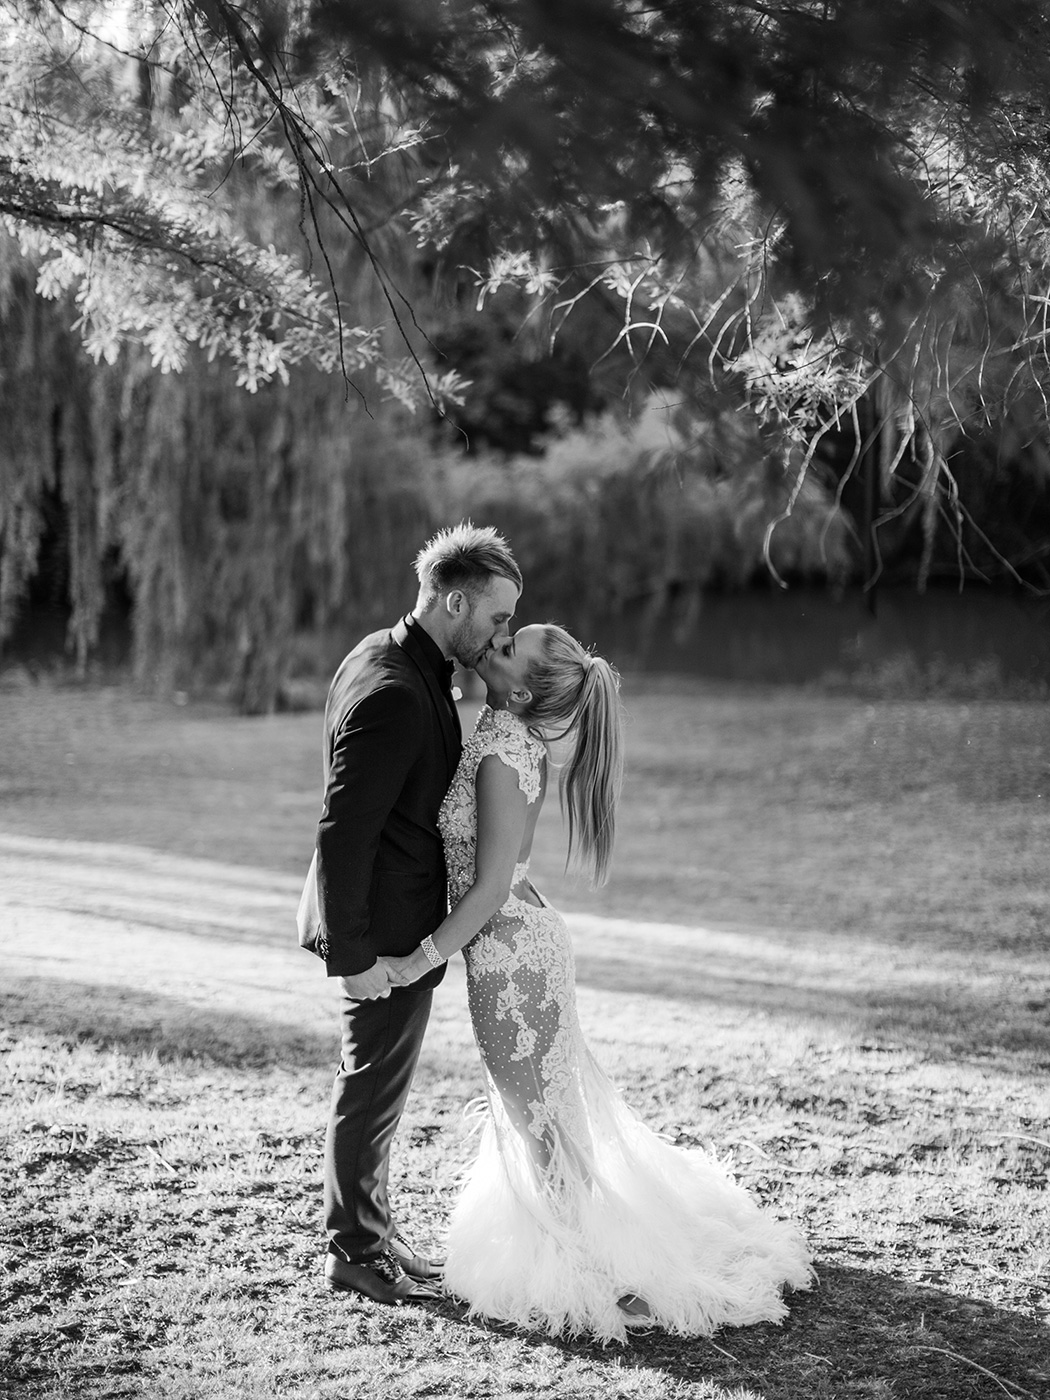 Bride & Groom | Rensche Mari Photography